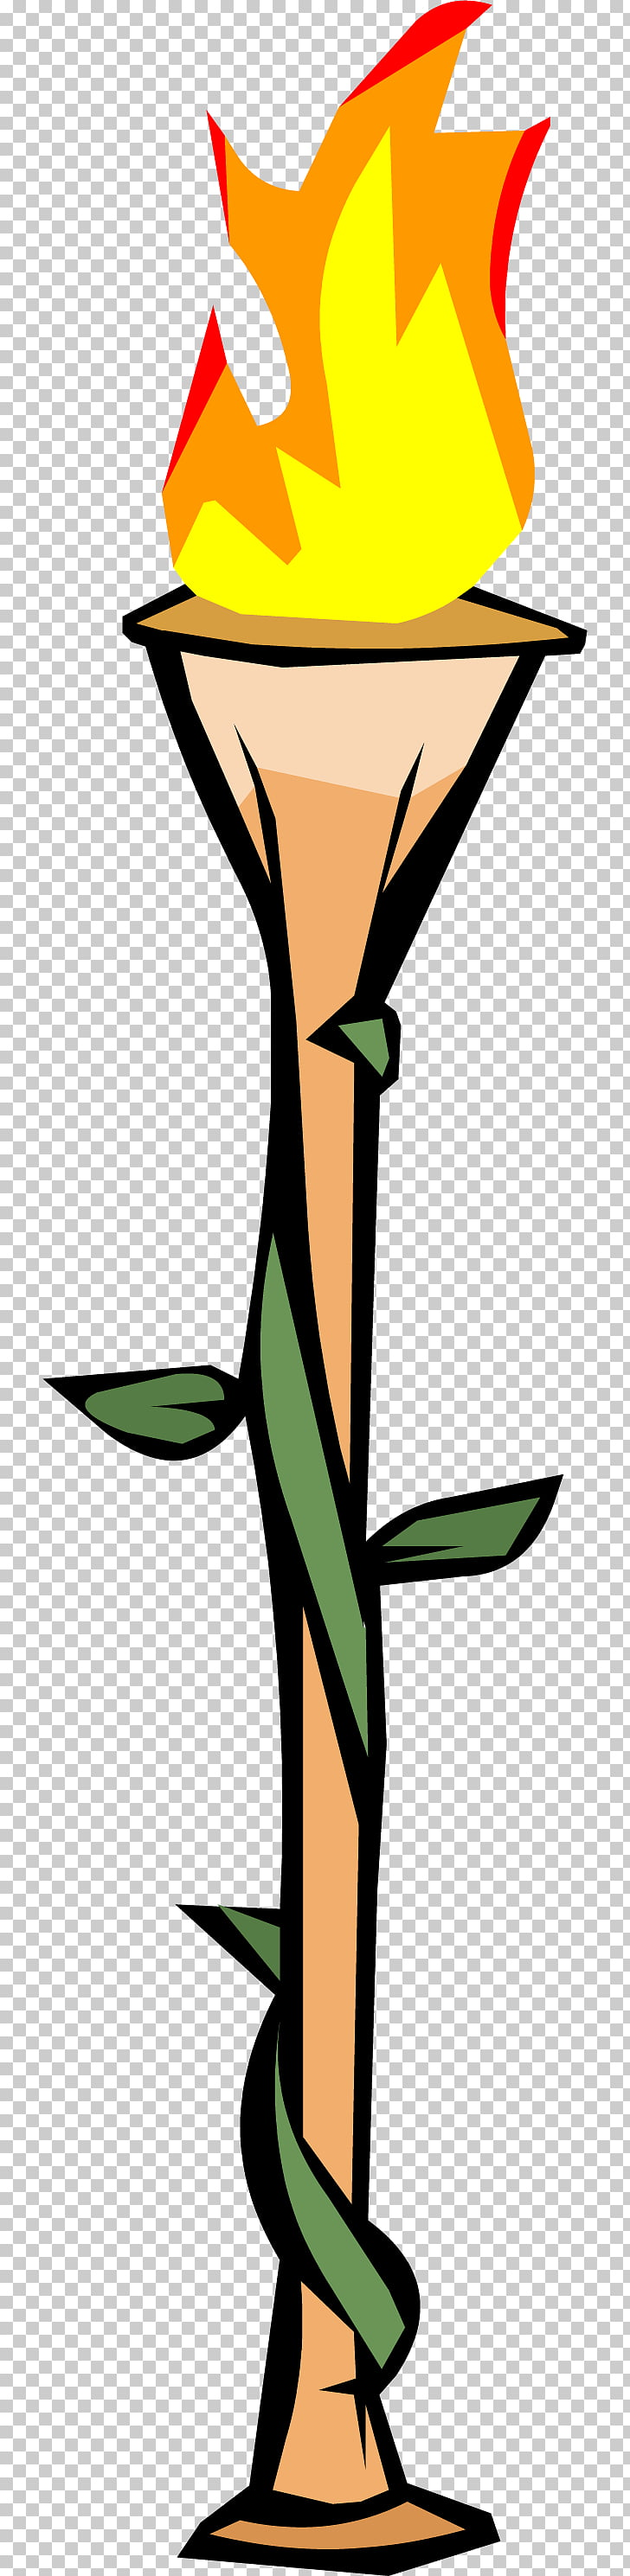 14 tiki Torch PNG cliparts for free download.